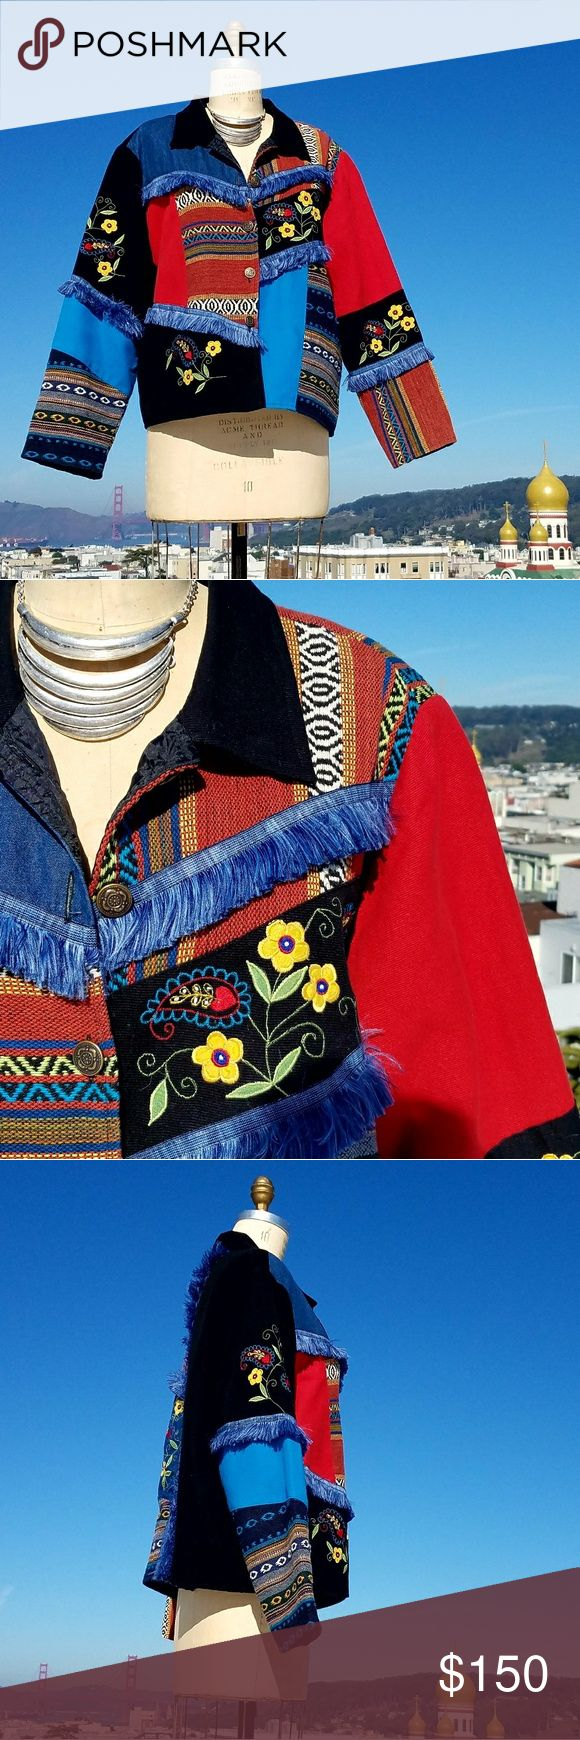 Vintage Julia Kim Mixed Media Jacket, Sz XL Stunning vintage mixed-media jacket from Julia Kim in a size extra large. This amazing piece has details everywhere! Vivid colors, lovely embroidery, tapestry-style sleeve fabric, and a silky soft liner make this a statement piece you'll want to keep forever. 💕 Definitely oversized at an extra large, this jacket is meant to be the star of the show. Ideal paired over an LBD or long sweater. In excellent vintage condition, and impeccably stored…